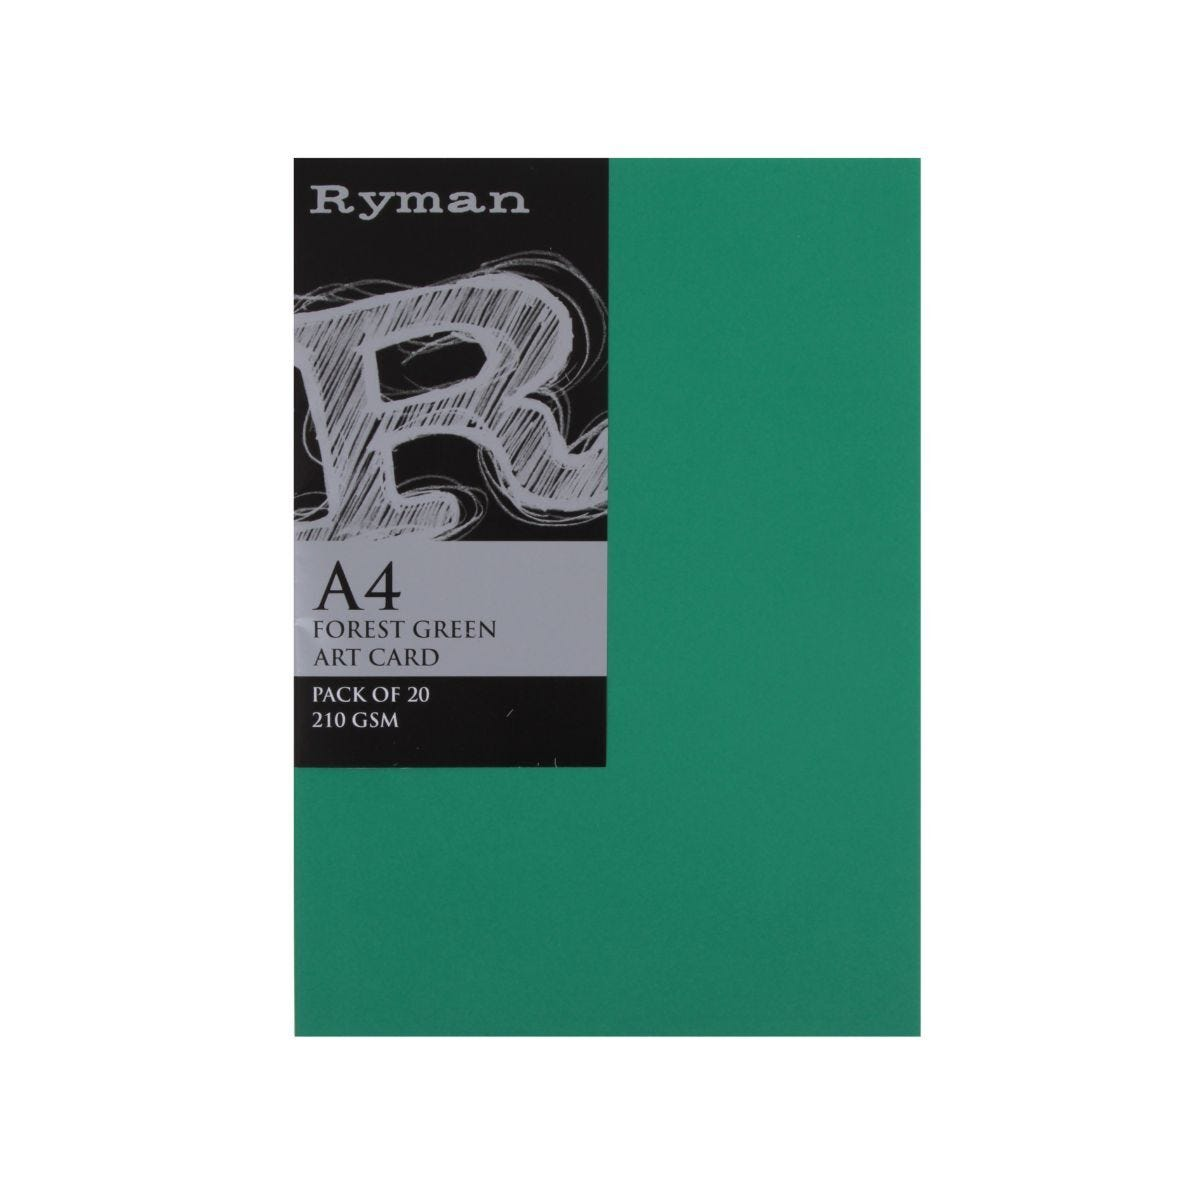 Ryman Artcard A4 210gsm Pack of 20 Forest Green